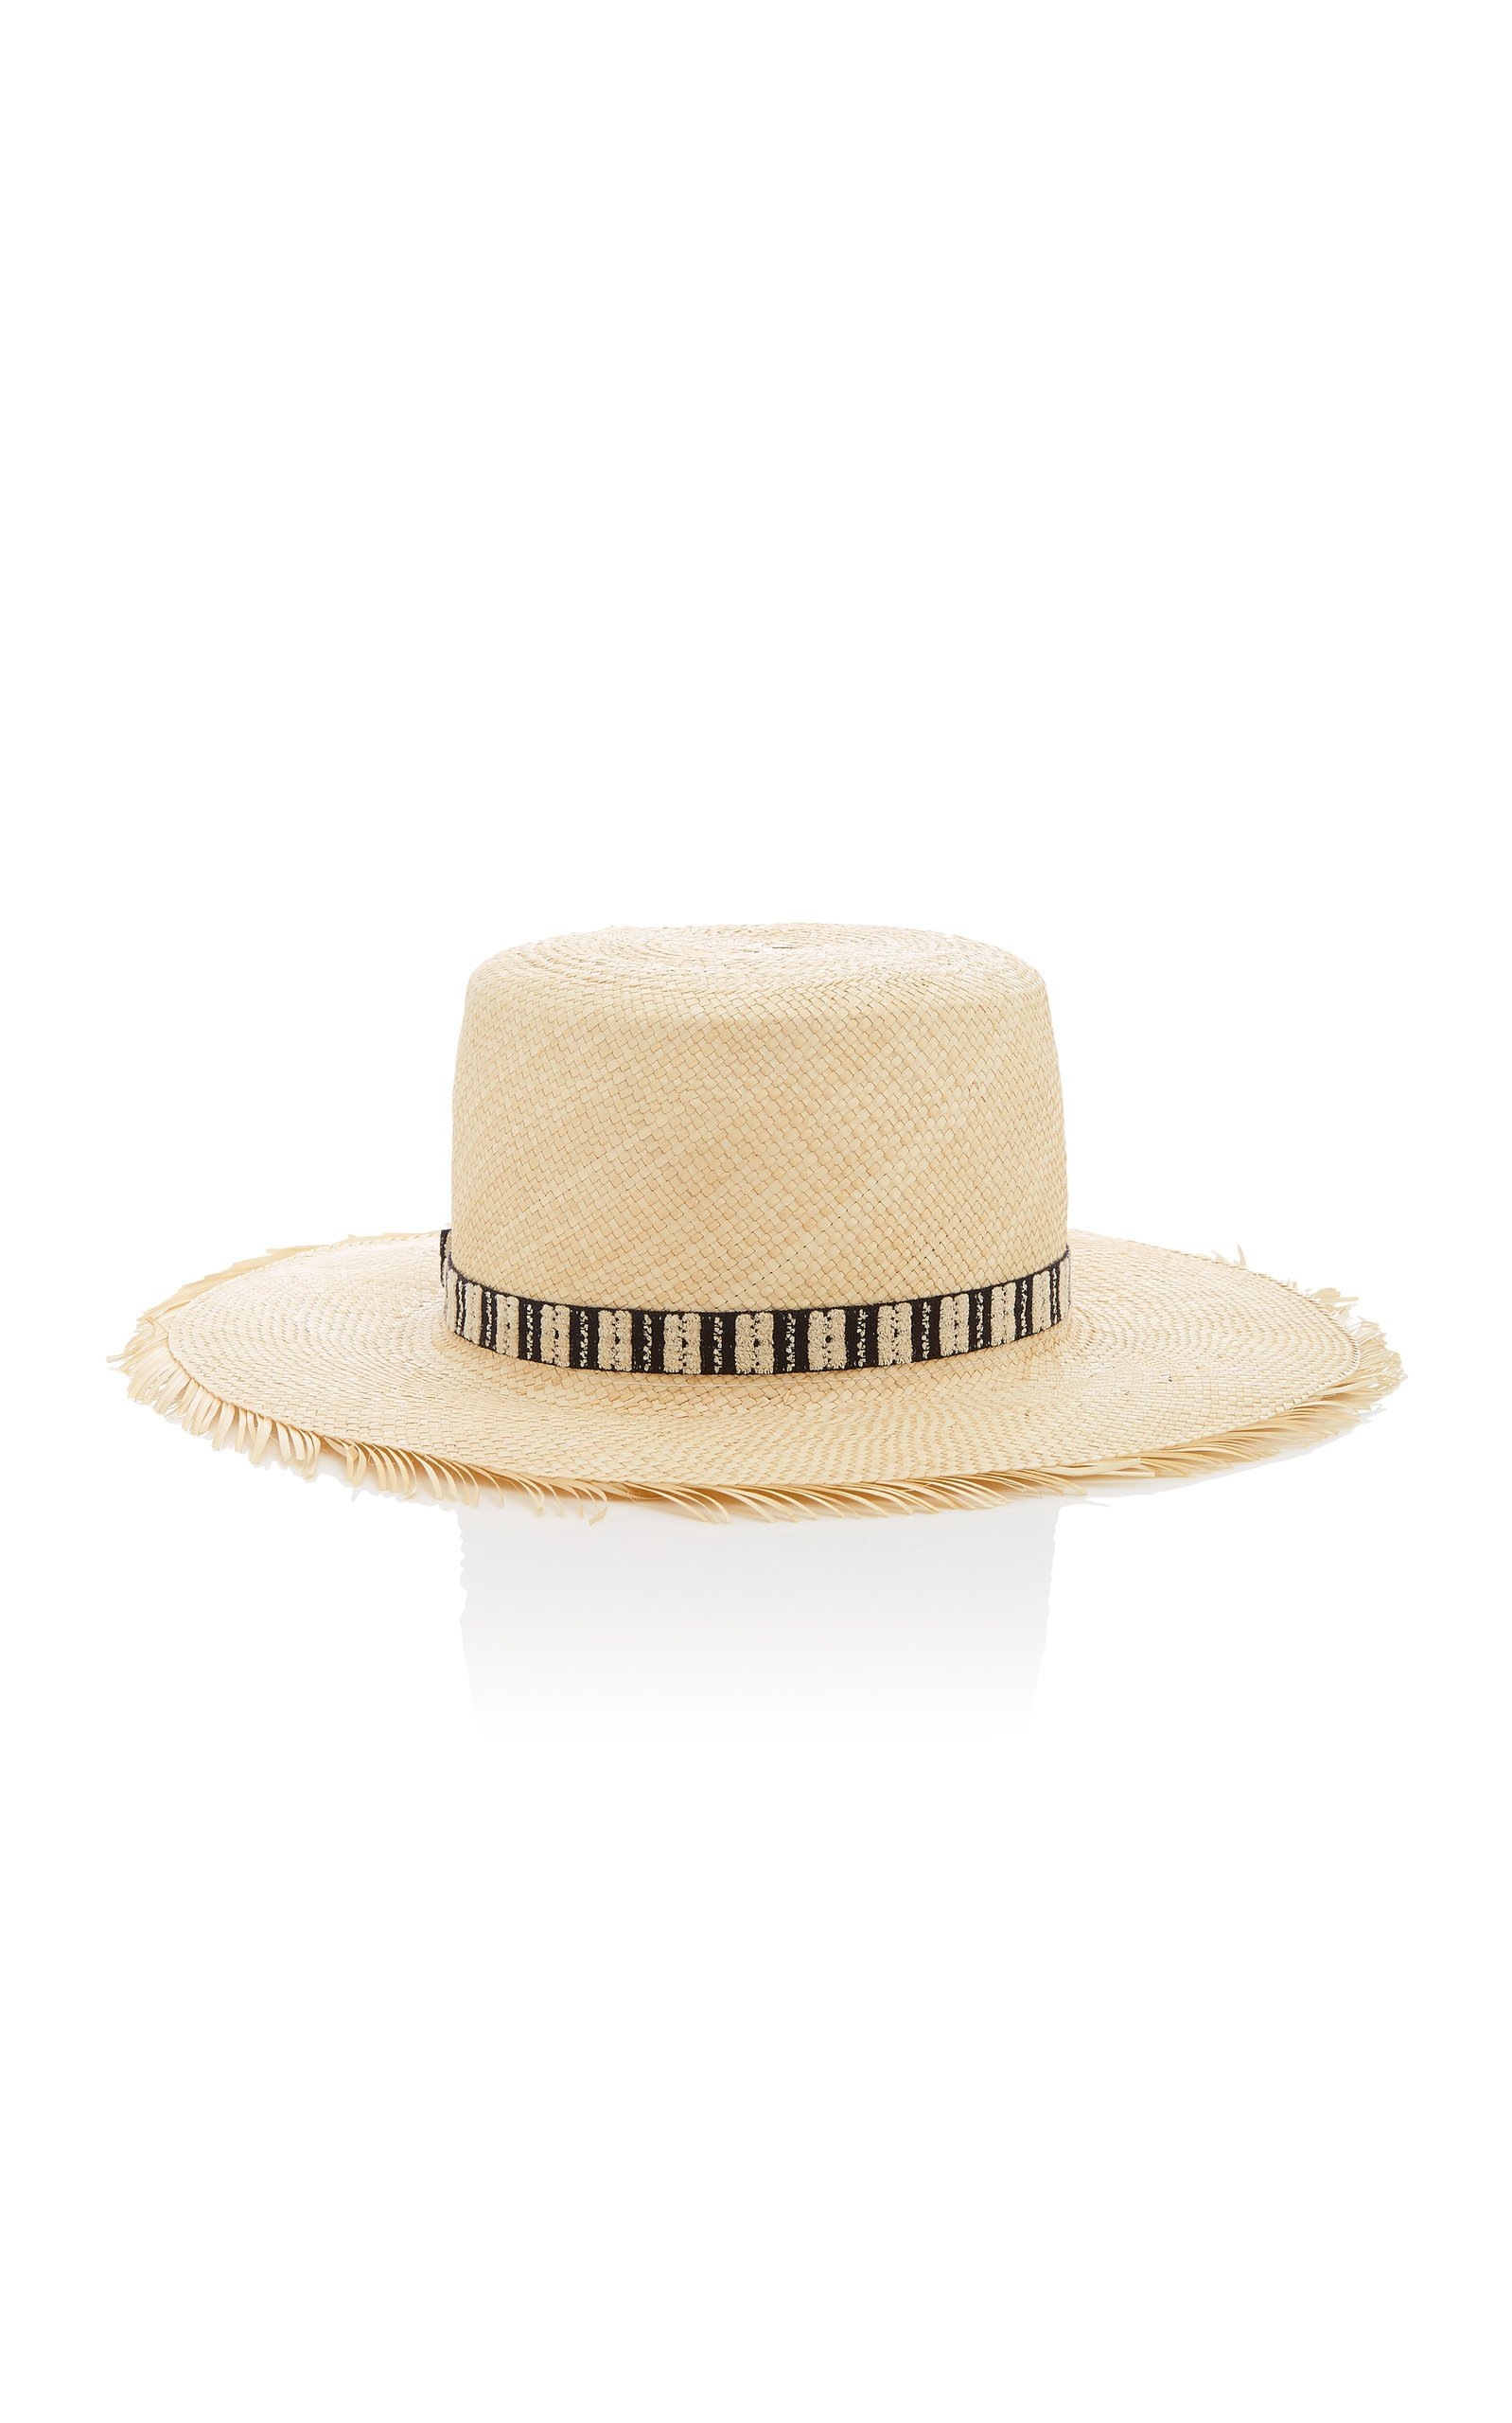 Yestadt Millinery Compass Frayed Straw Hat Size: S